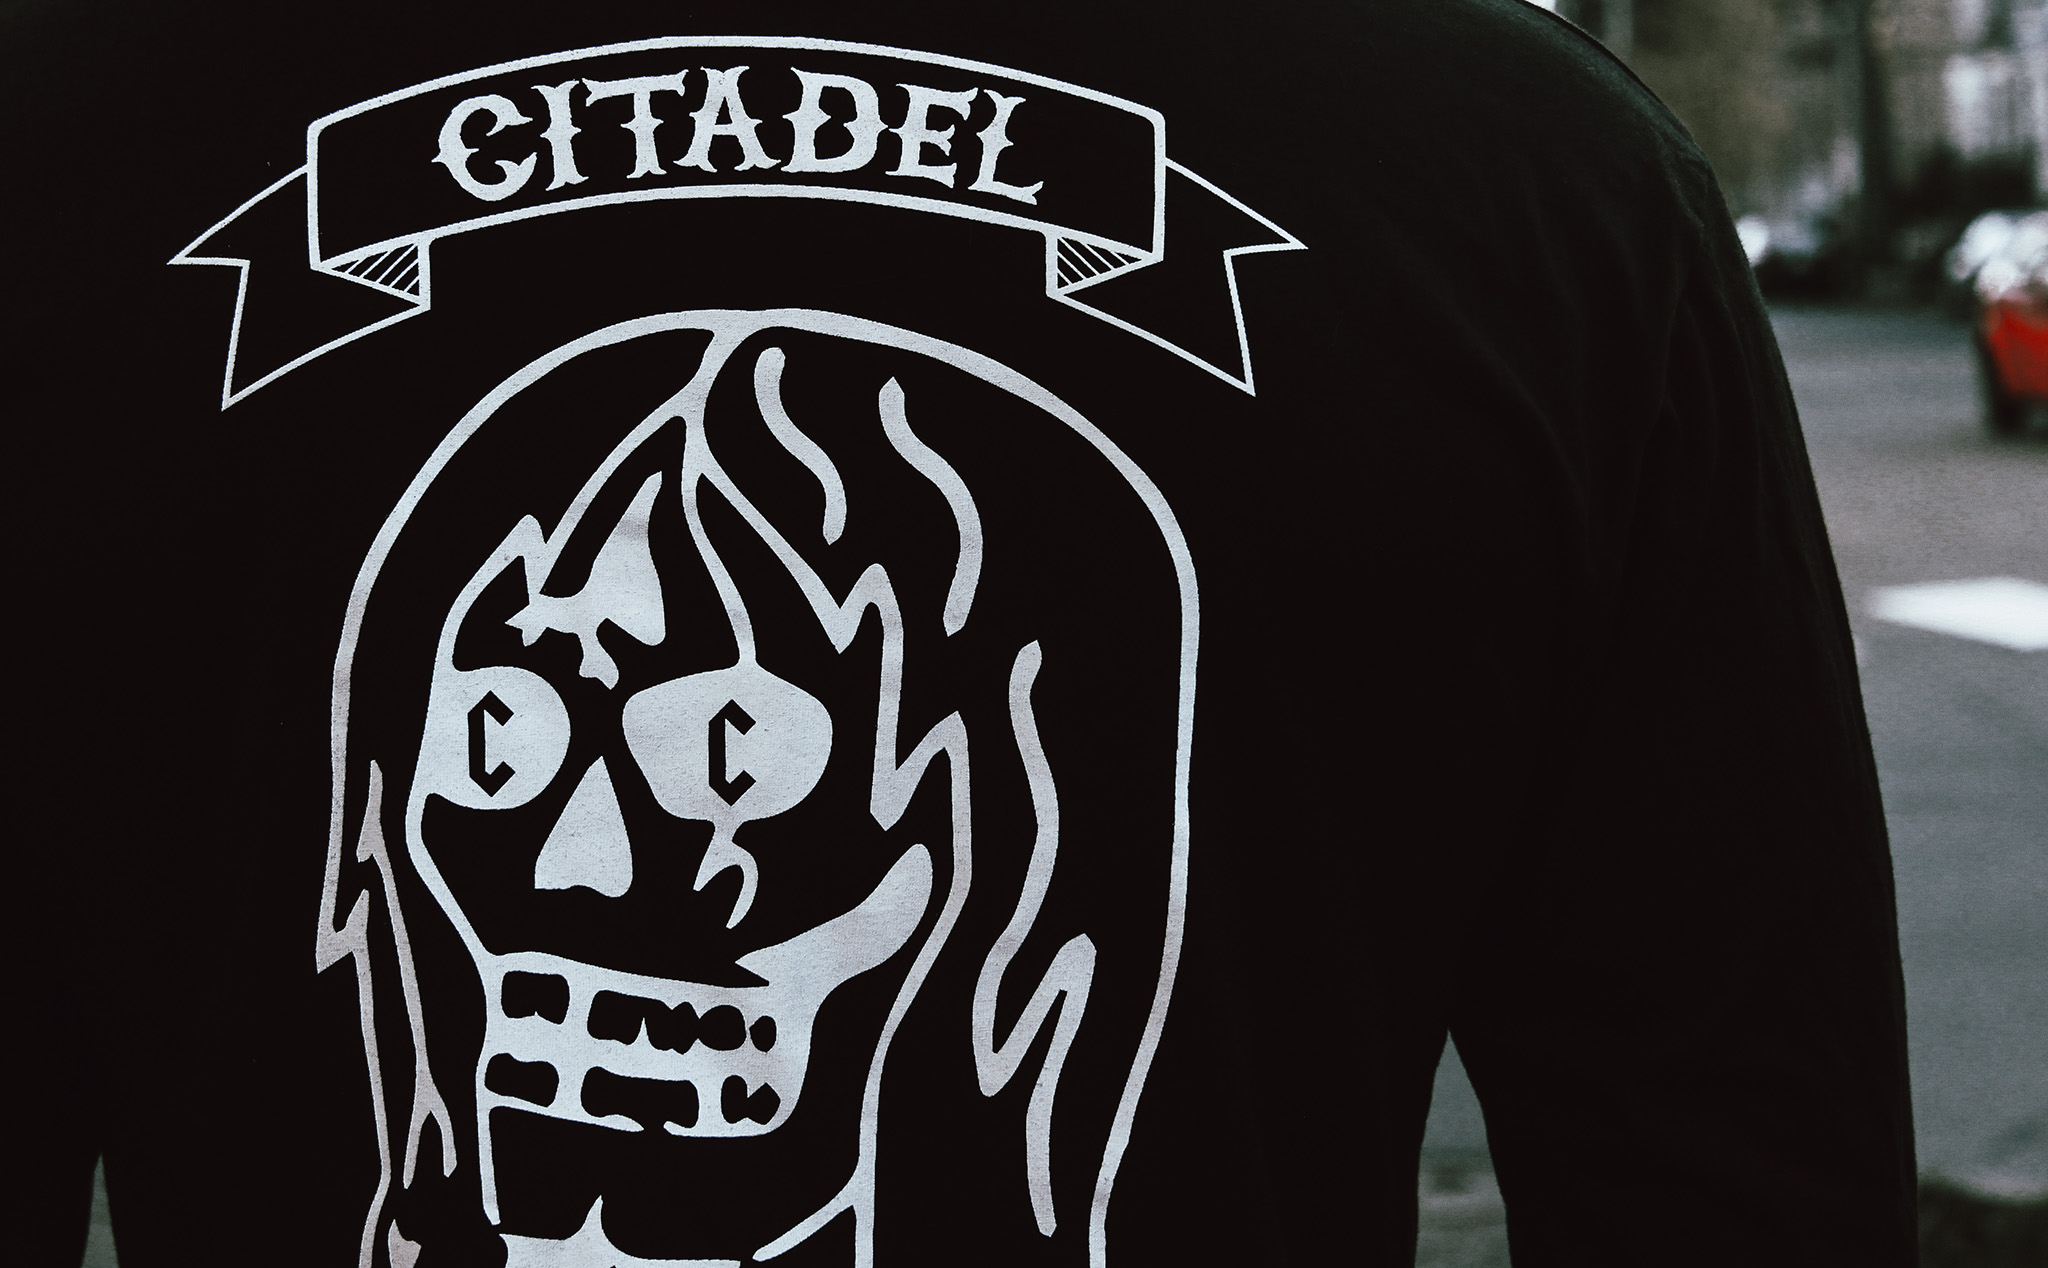 BB - Citadel Fall Winter CitadelCC Citadel Clothing Co